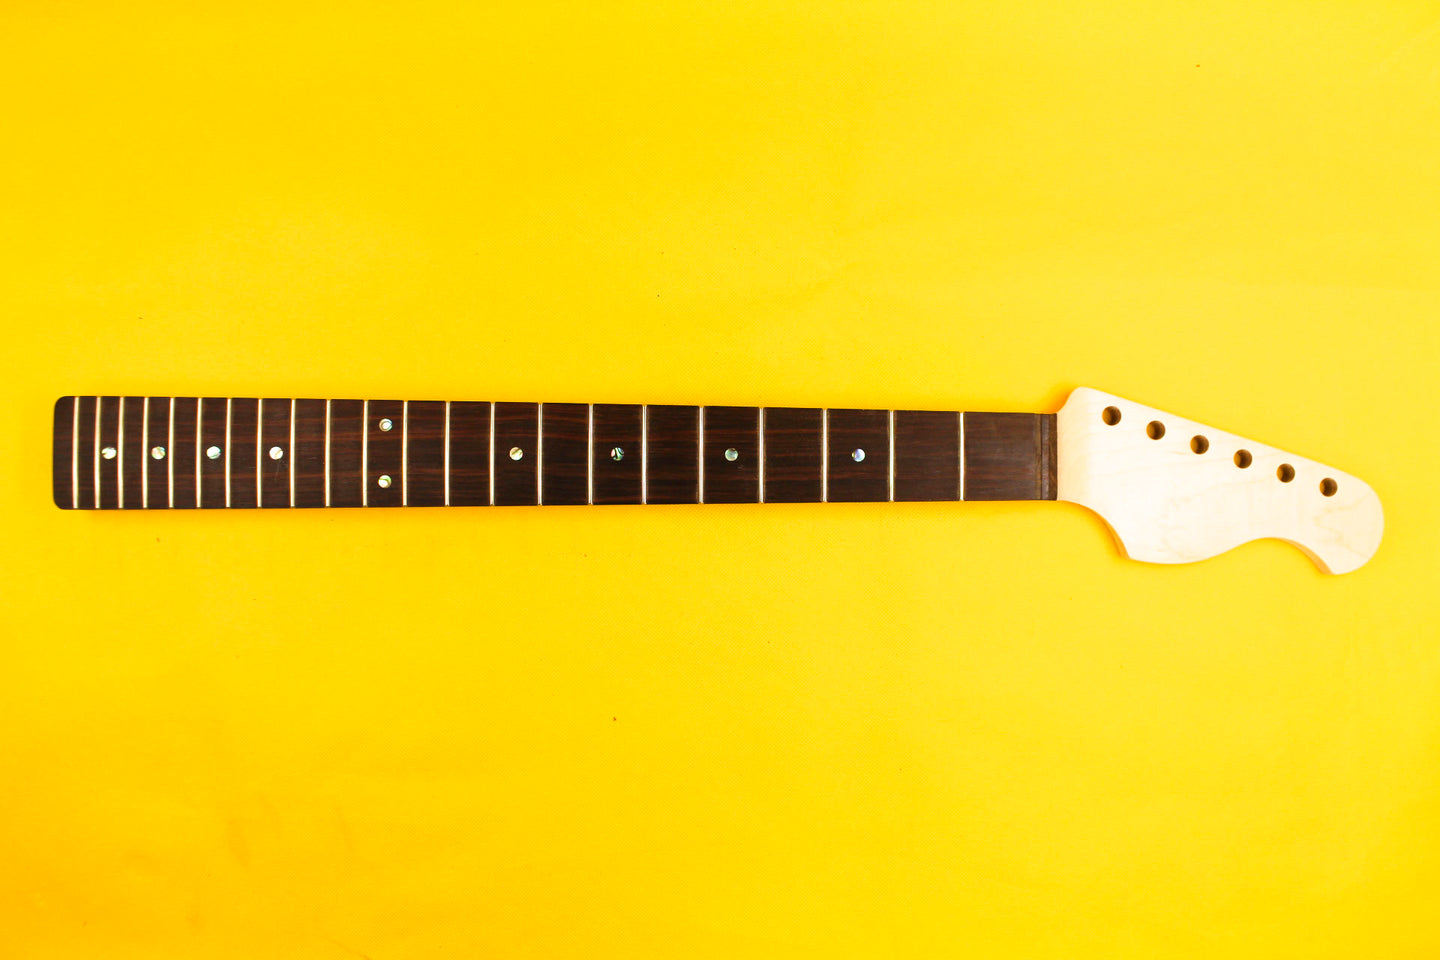 TC Guitar Neck - 700368